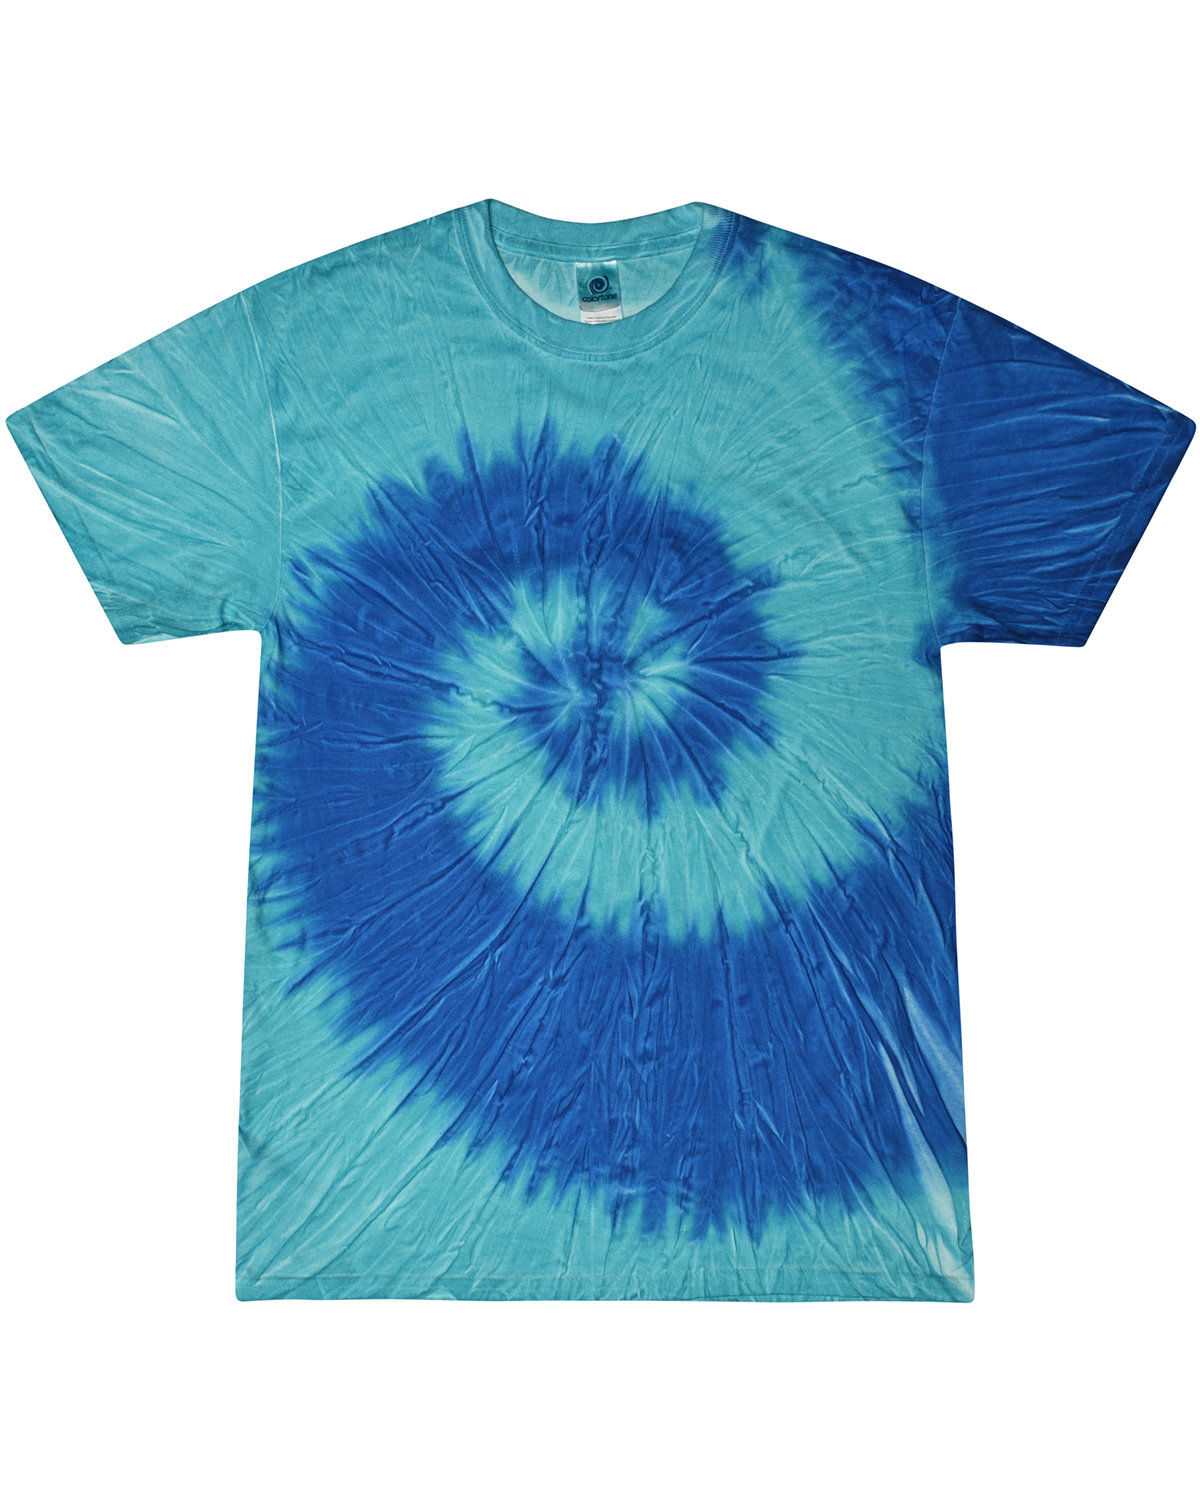 Tie-Dye Adult 5.4 oz., 100% Cotton T-Shirt STELLA BLUE